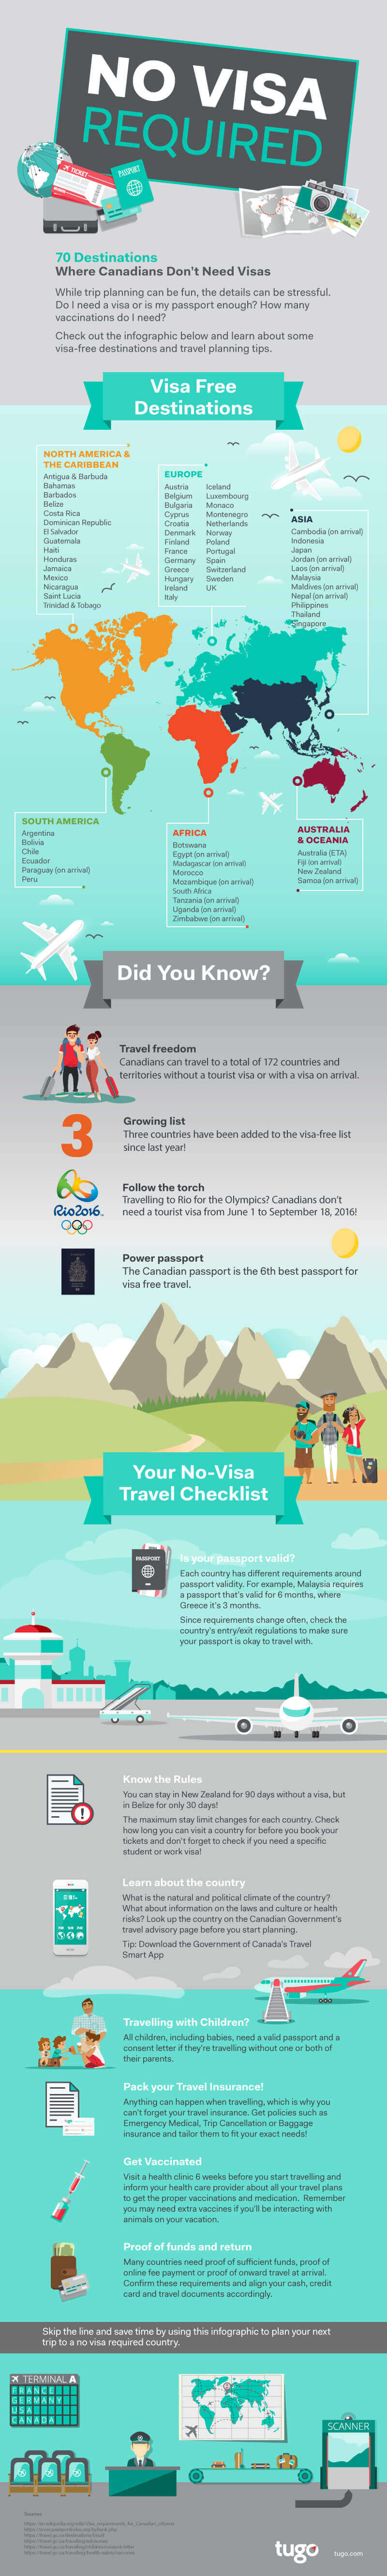 How Much Travel Insurance Do I Need For Us Visa